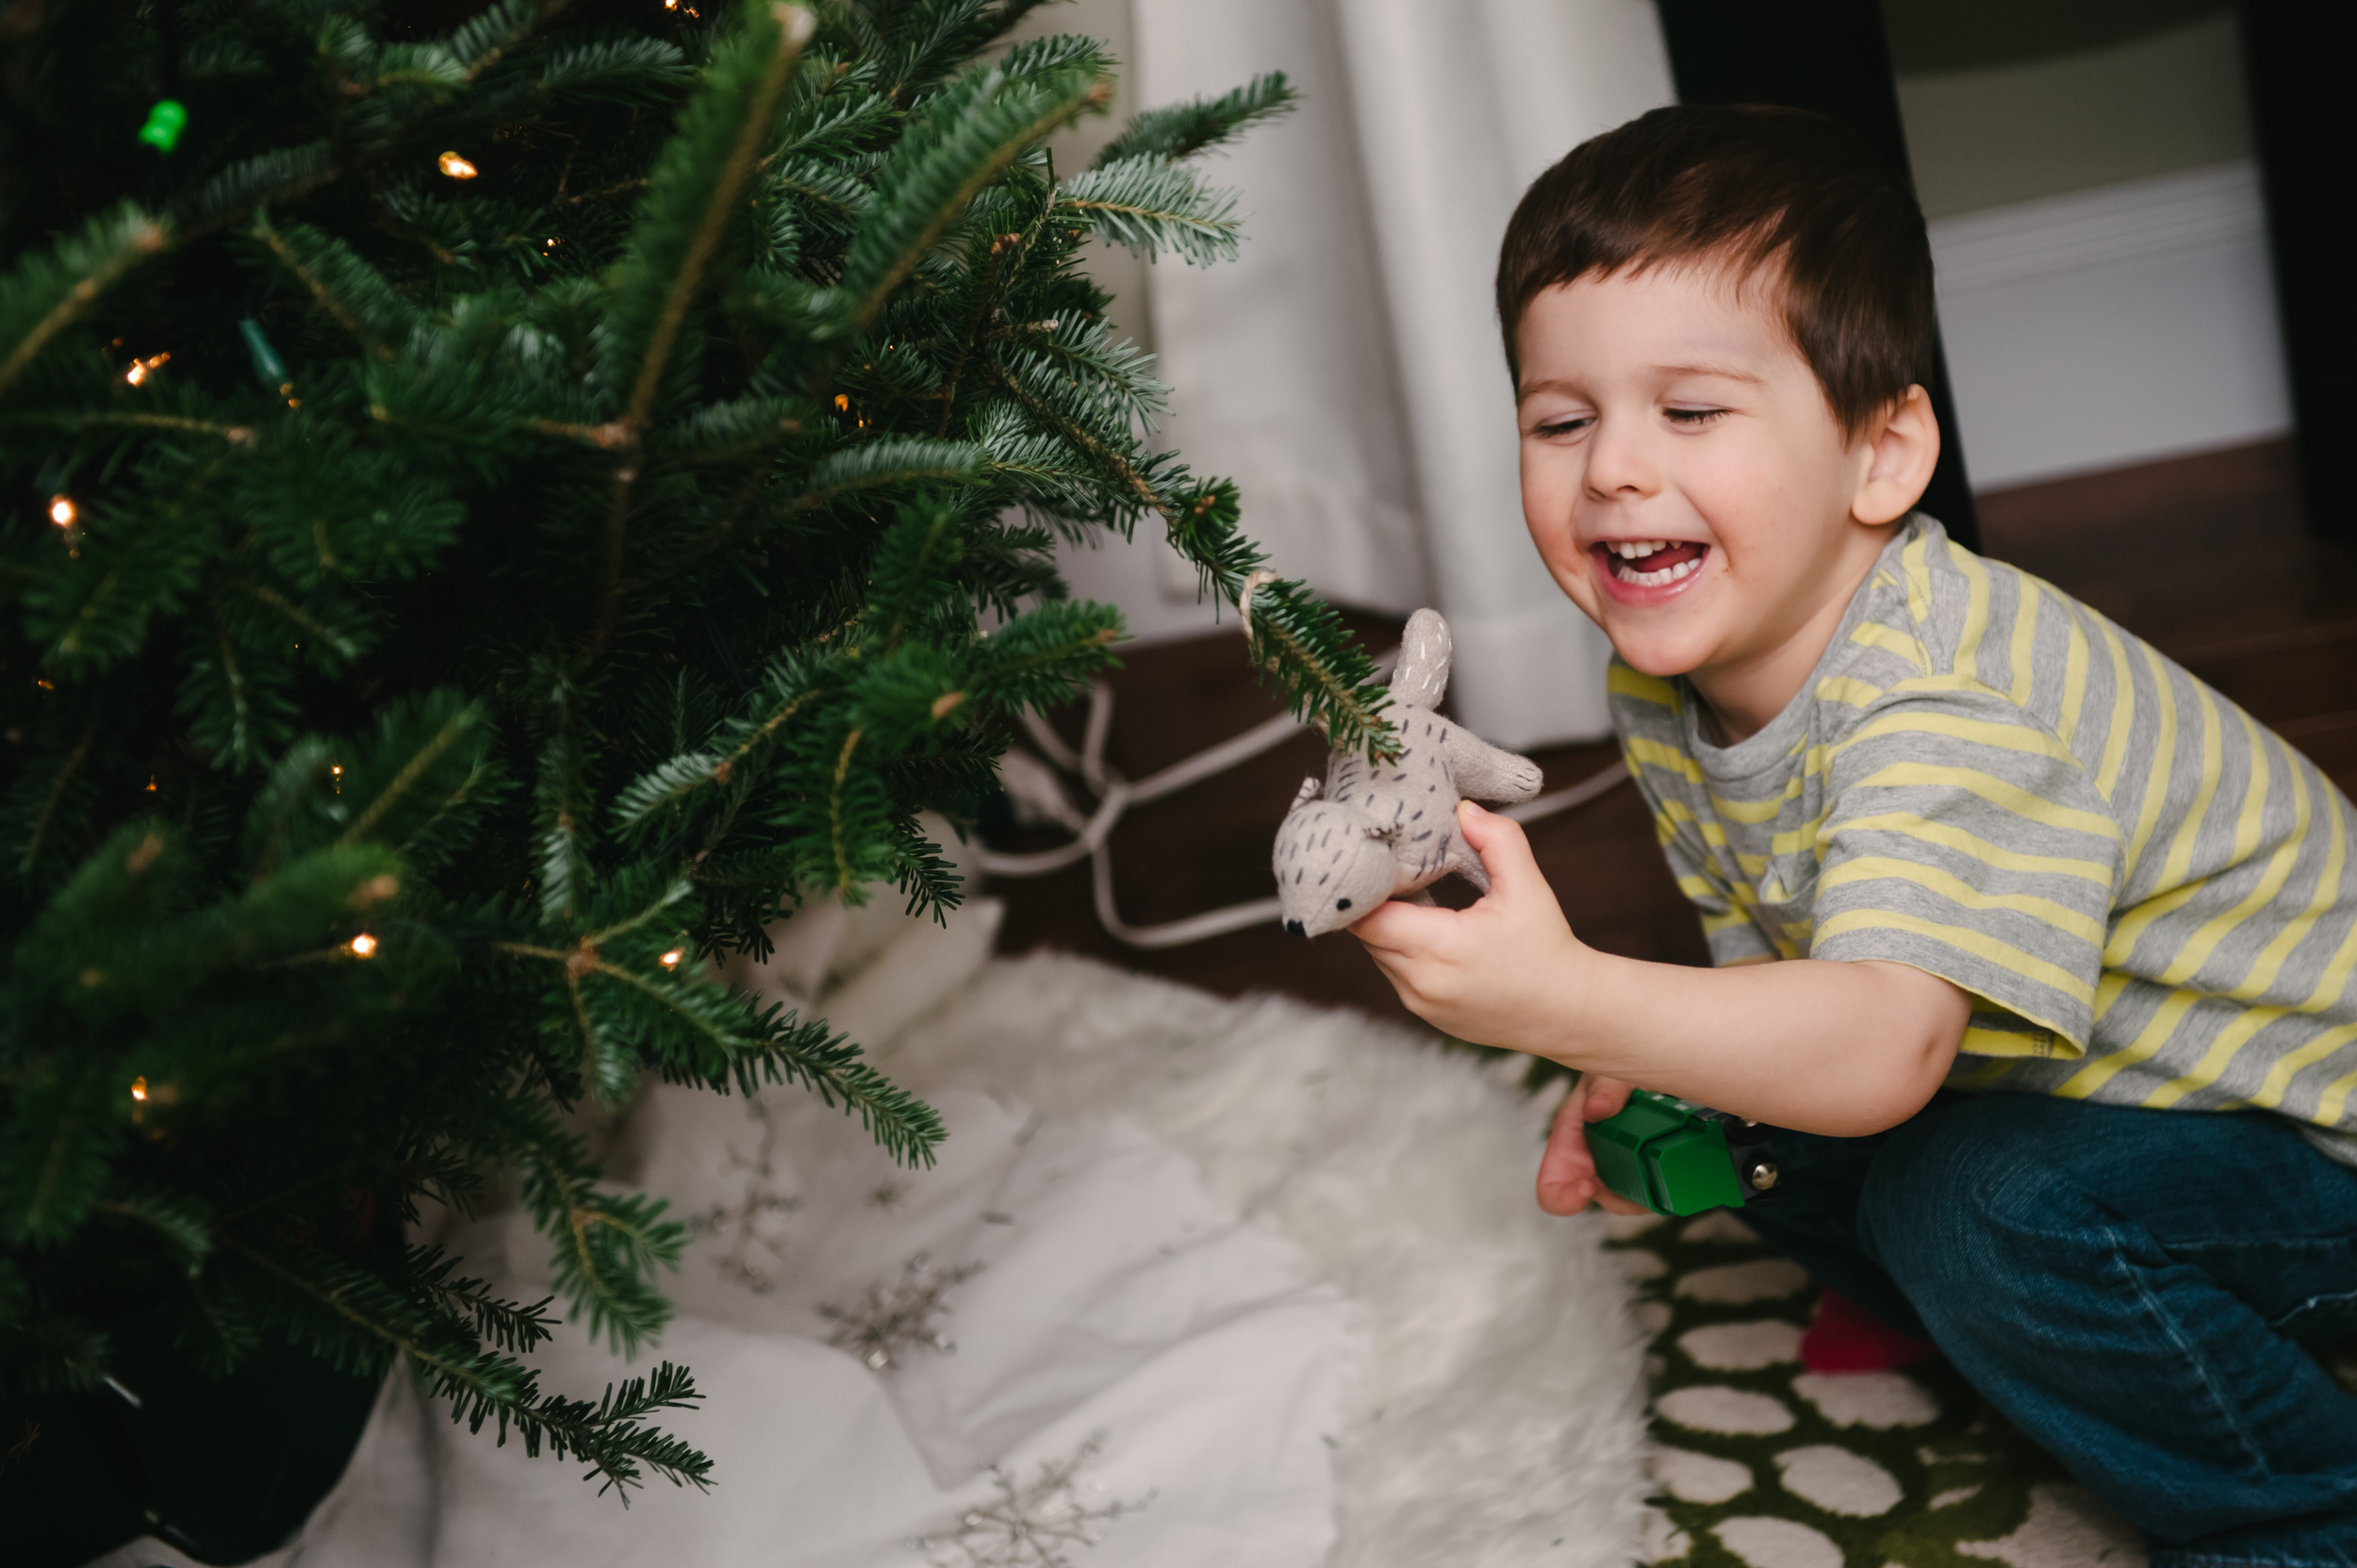 Helping Decorate the Tree